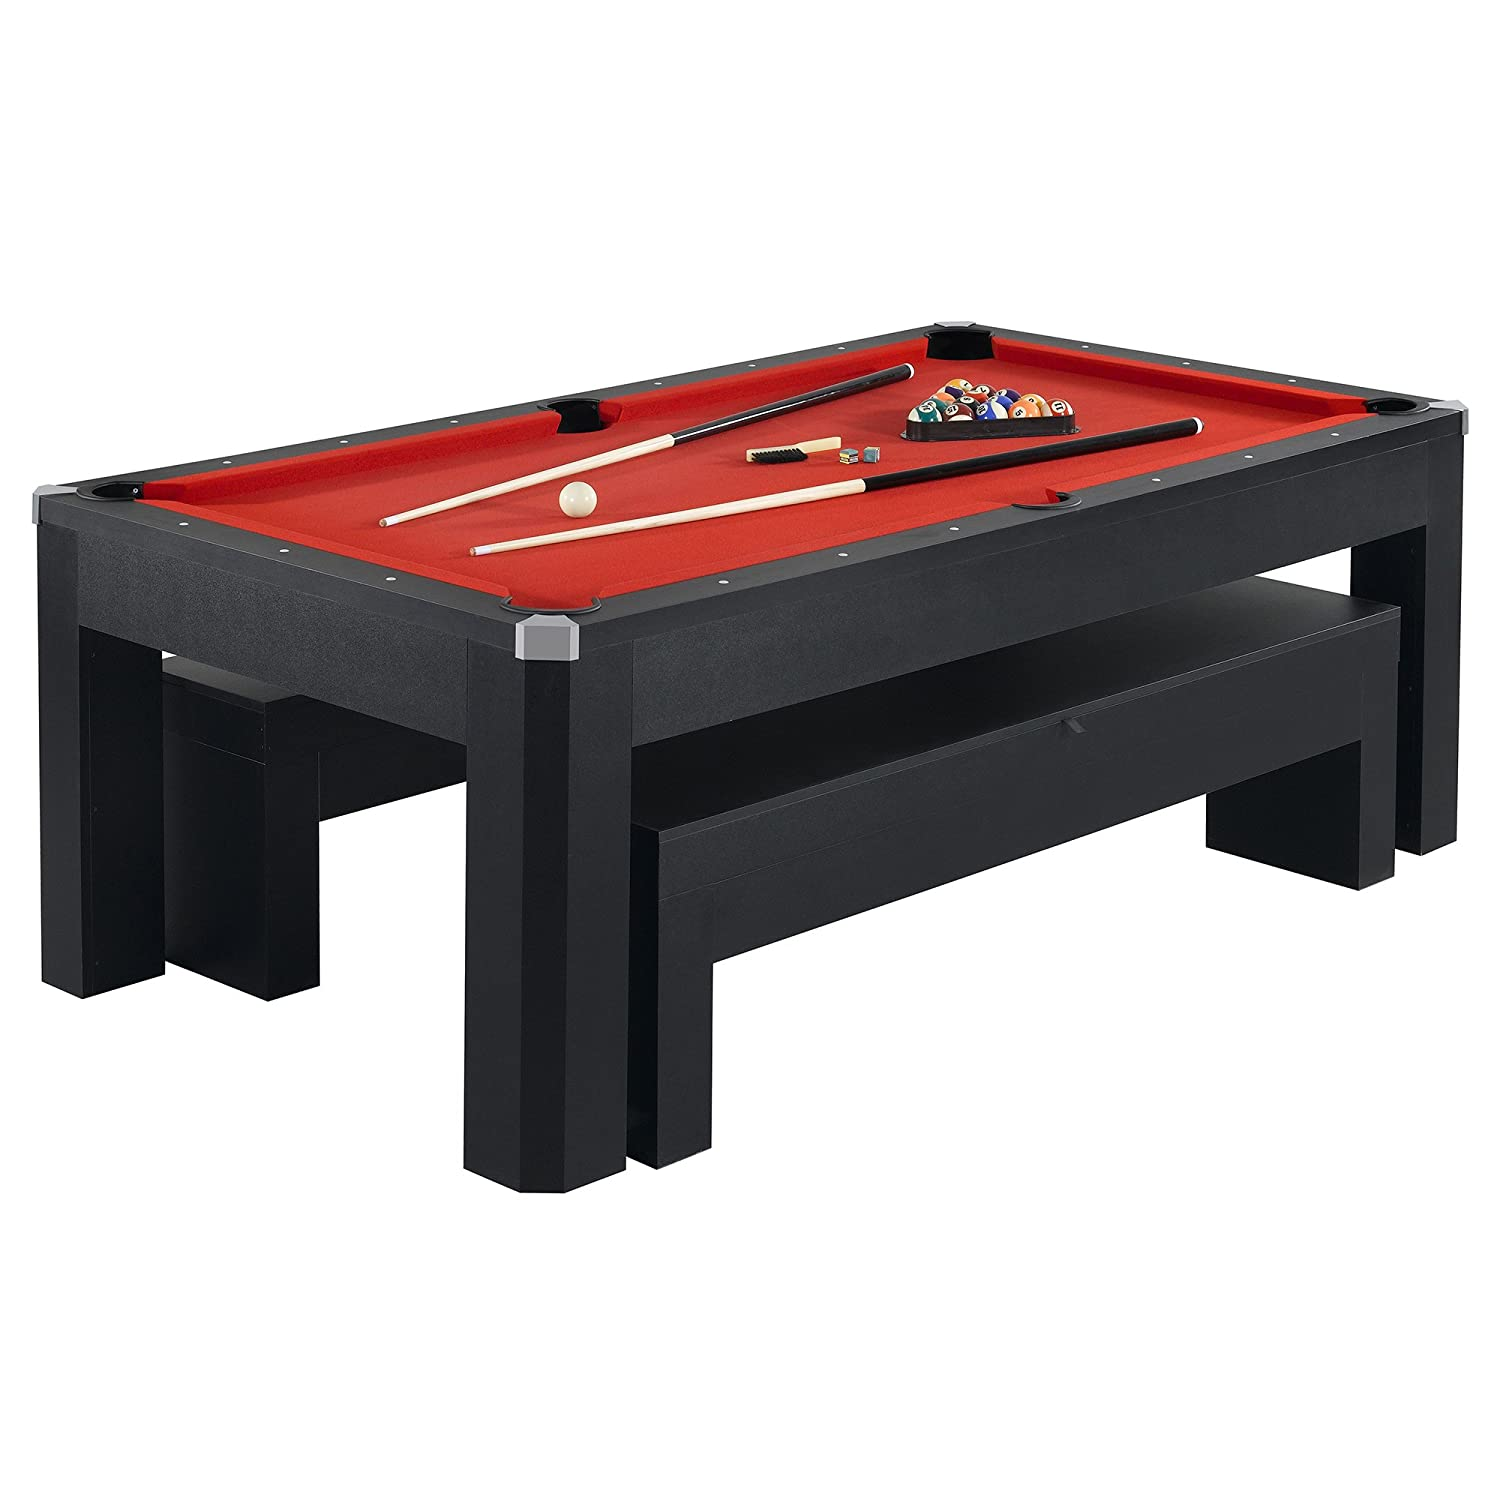 Hathaway Park Avenue 7u0027 Pool Table Tennis Combination With Dining Top, Two  Storage Benches